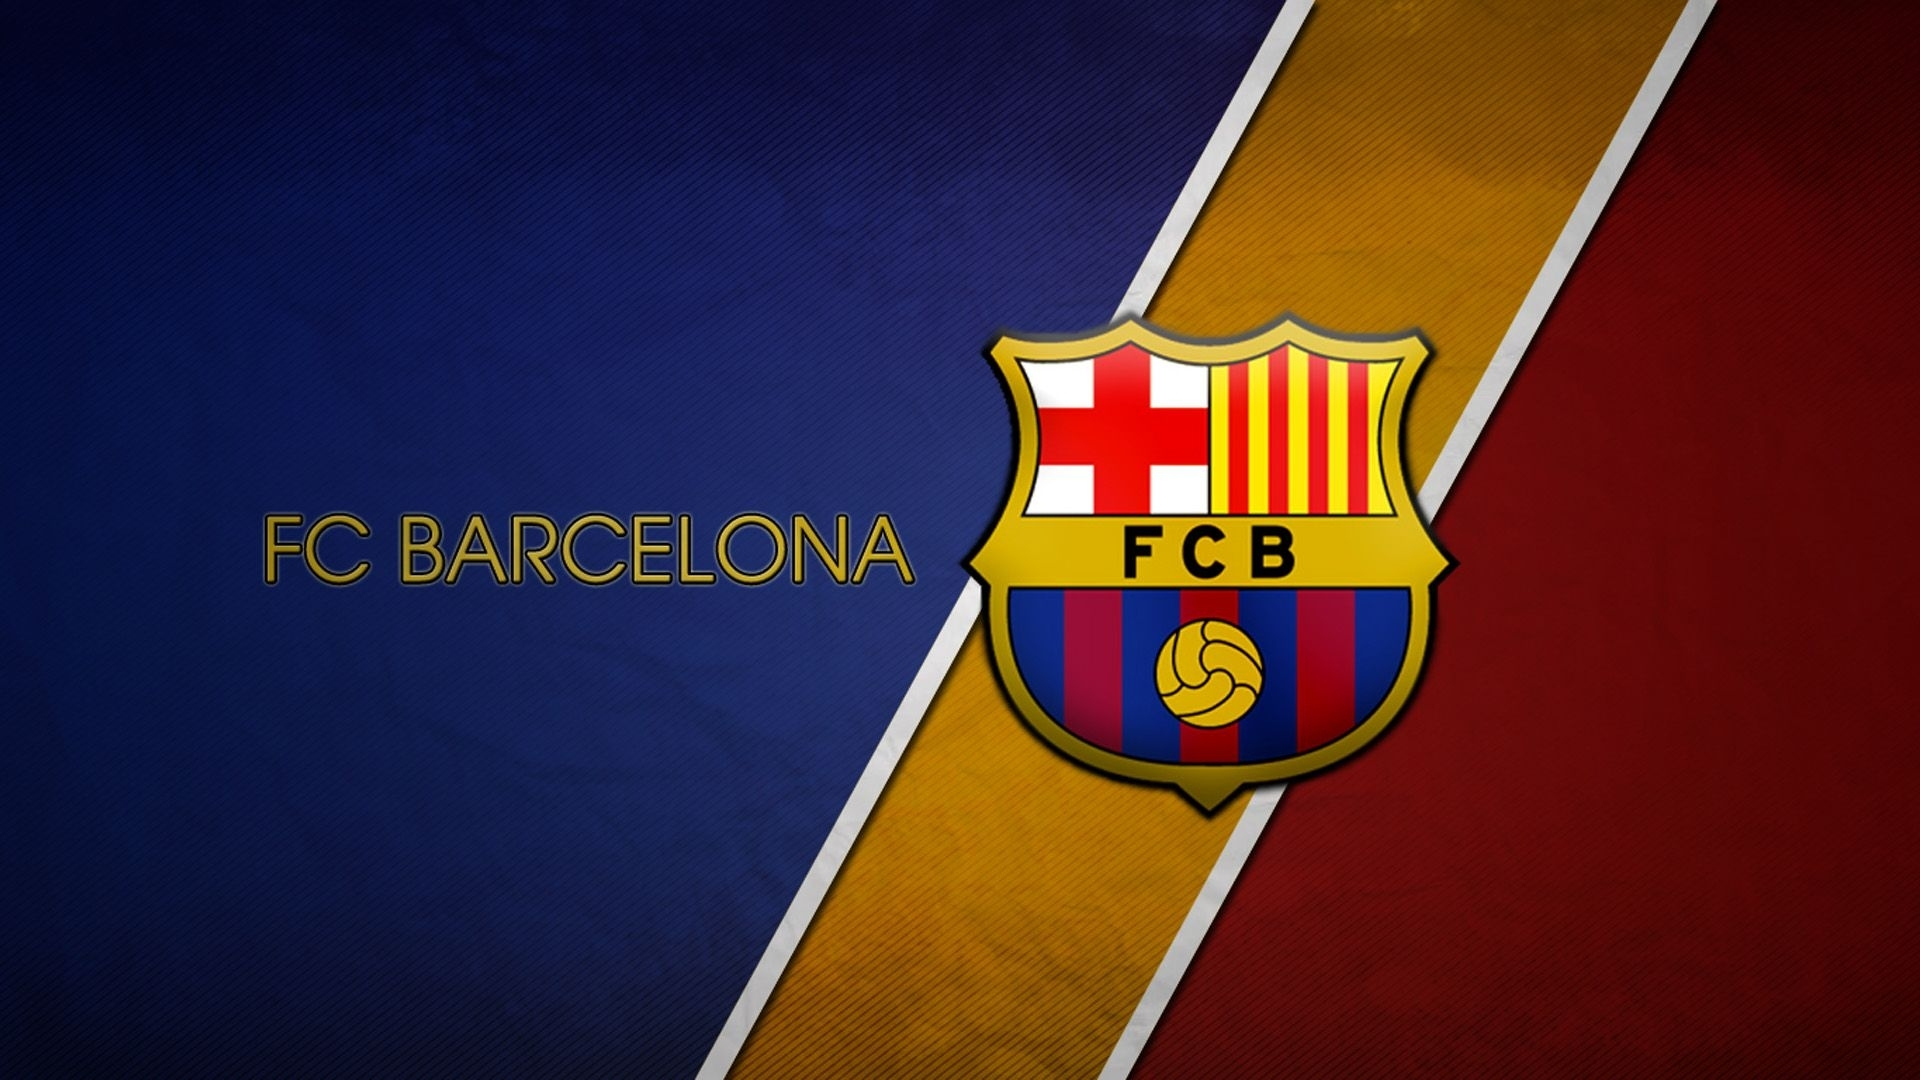 fcb wallpapers hd free download: find best latest fcb wallpapers hd